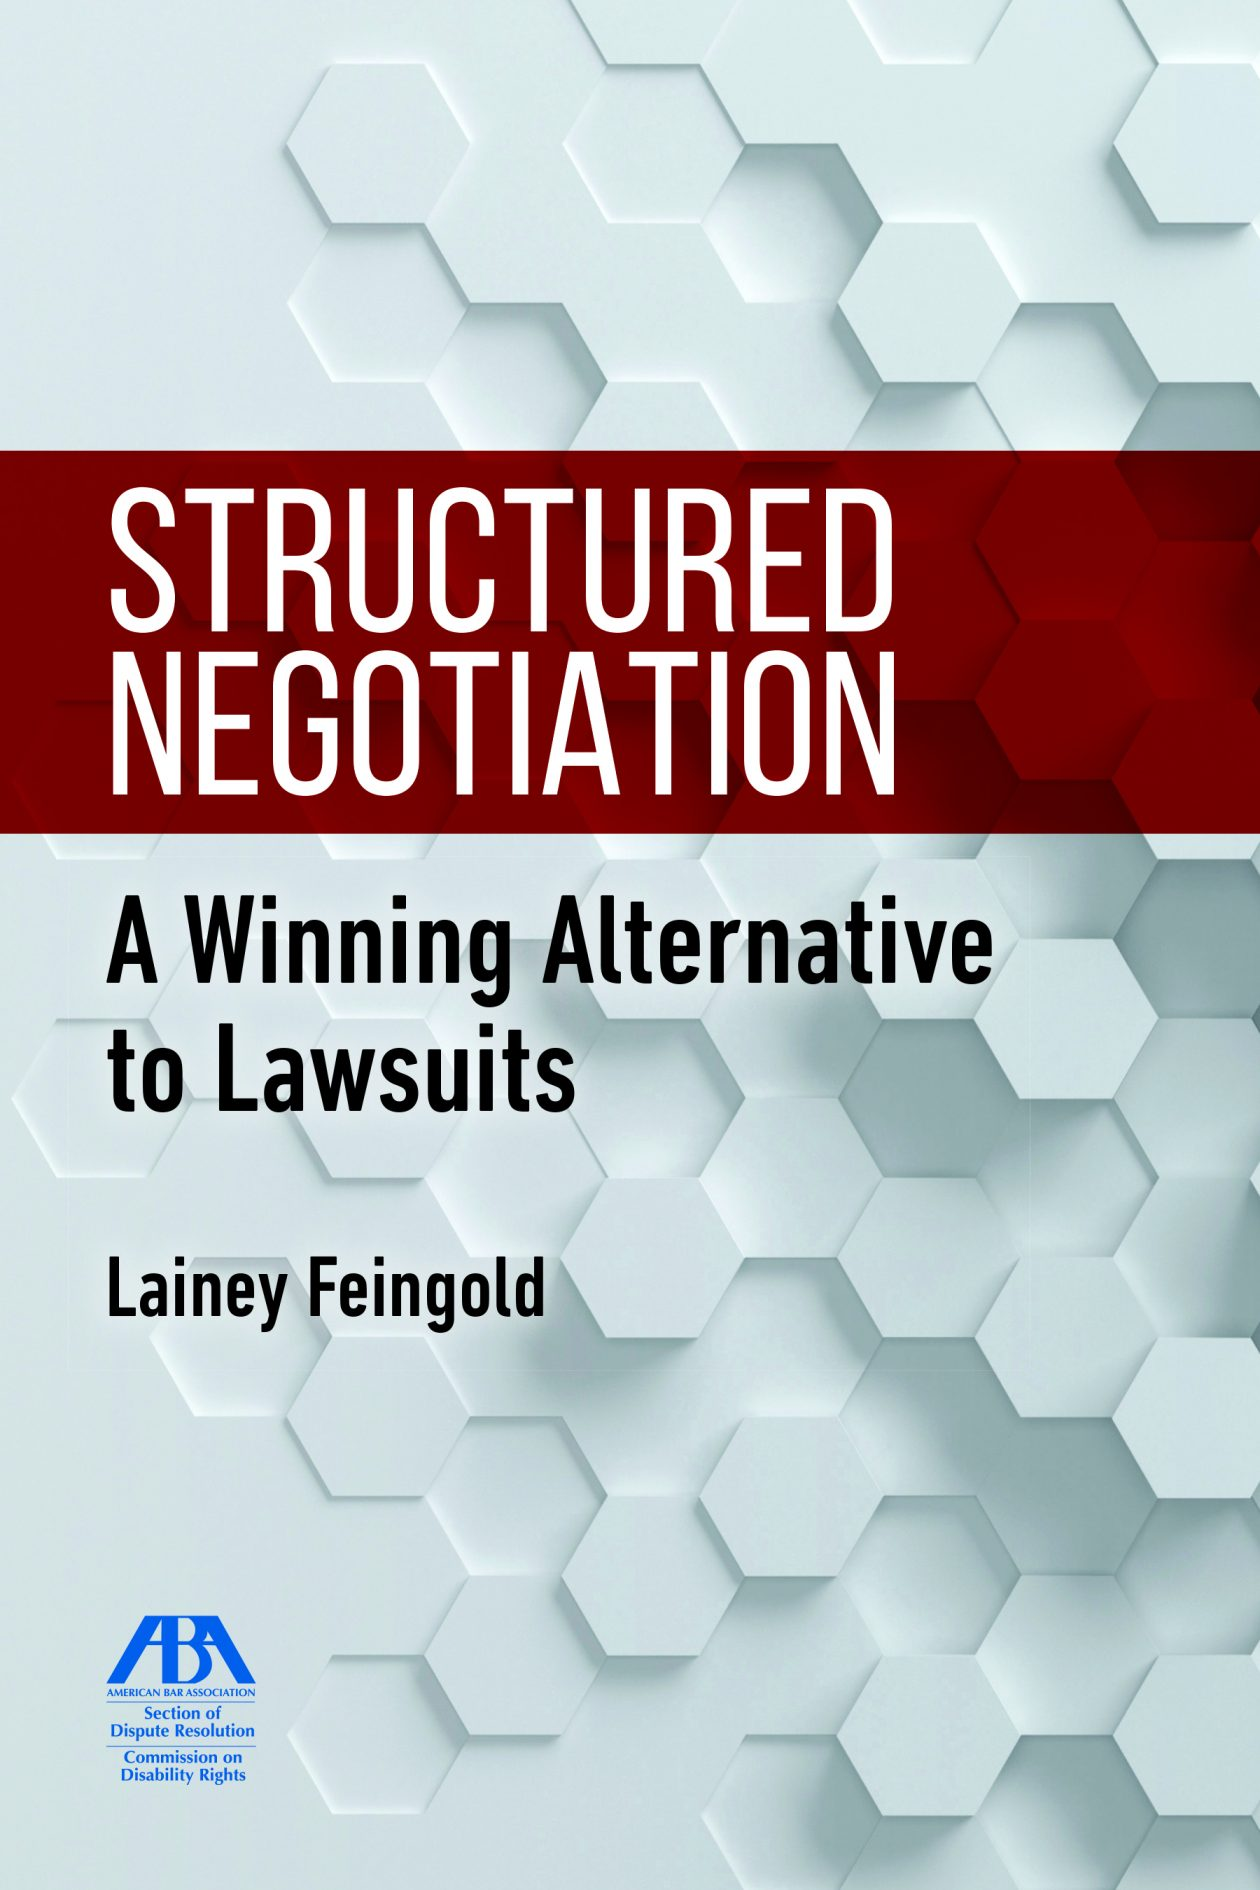 Book cover of Structured Negotiation, A Winning Alternative to Lawsuits